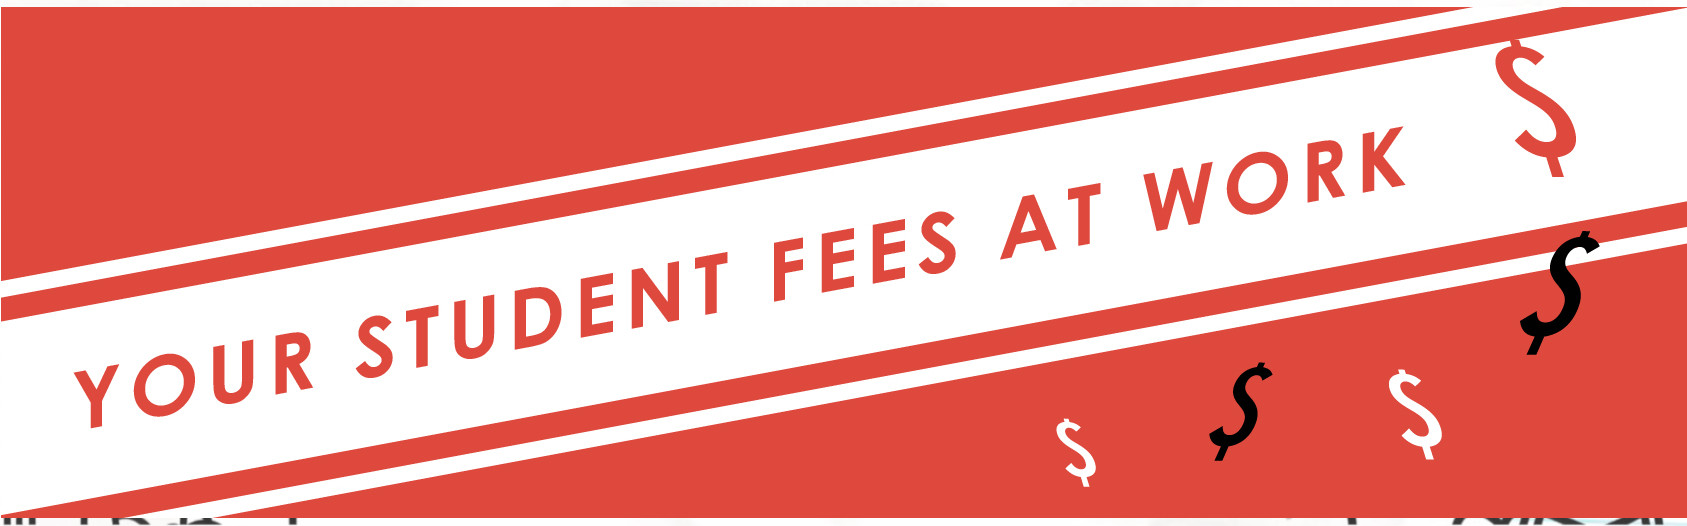 Your USU Student Fees At Work Banner